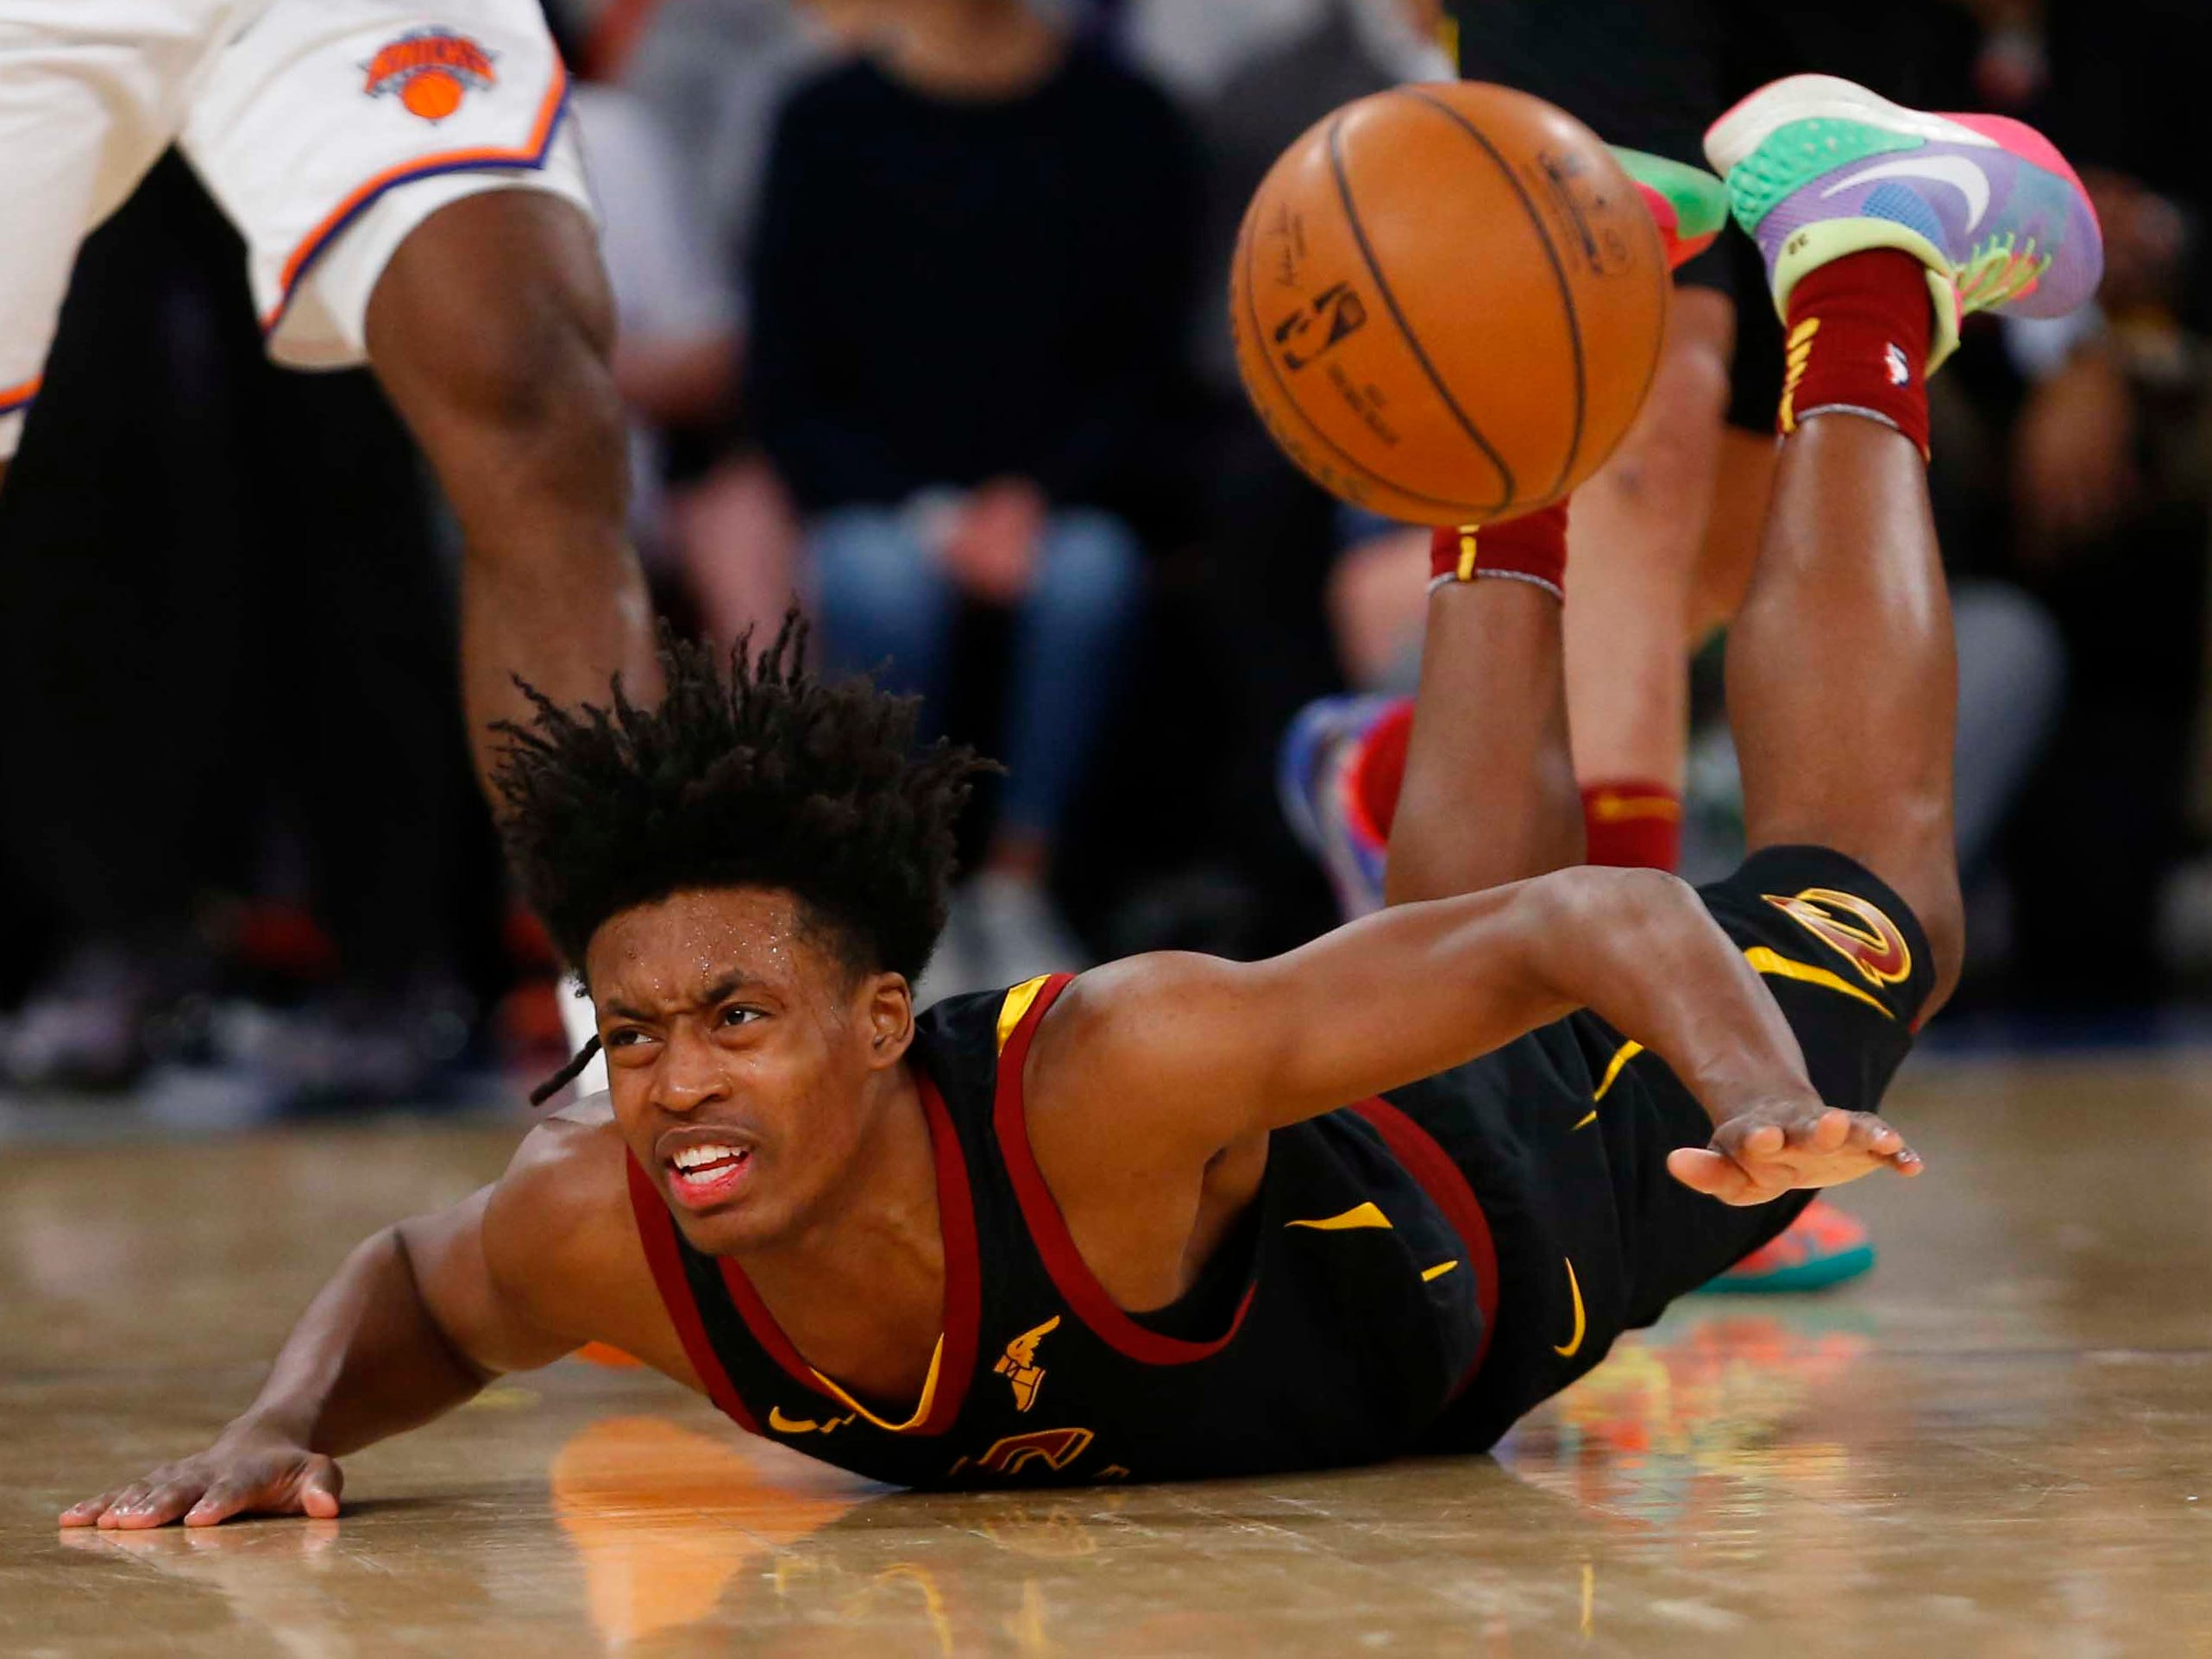 Feb. 28: Cavaliers guard Collin Sexton falls to the floor scrambling after a loose ball during the second half against the Knicks at Madison Square Garden.